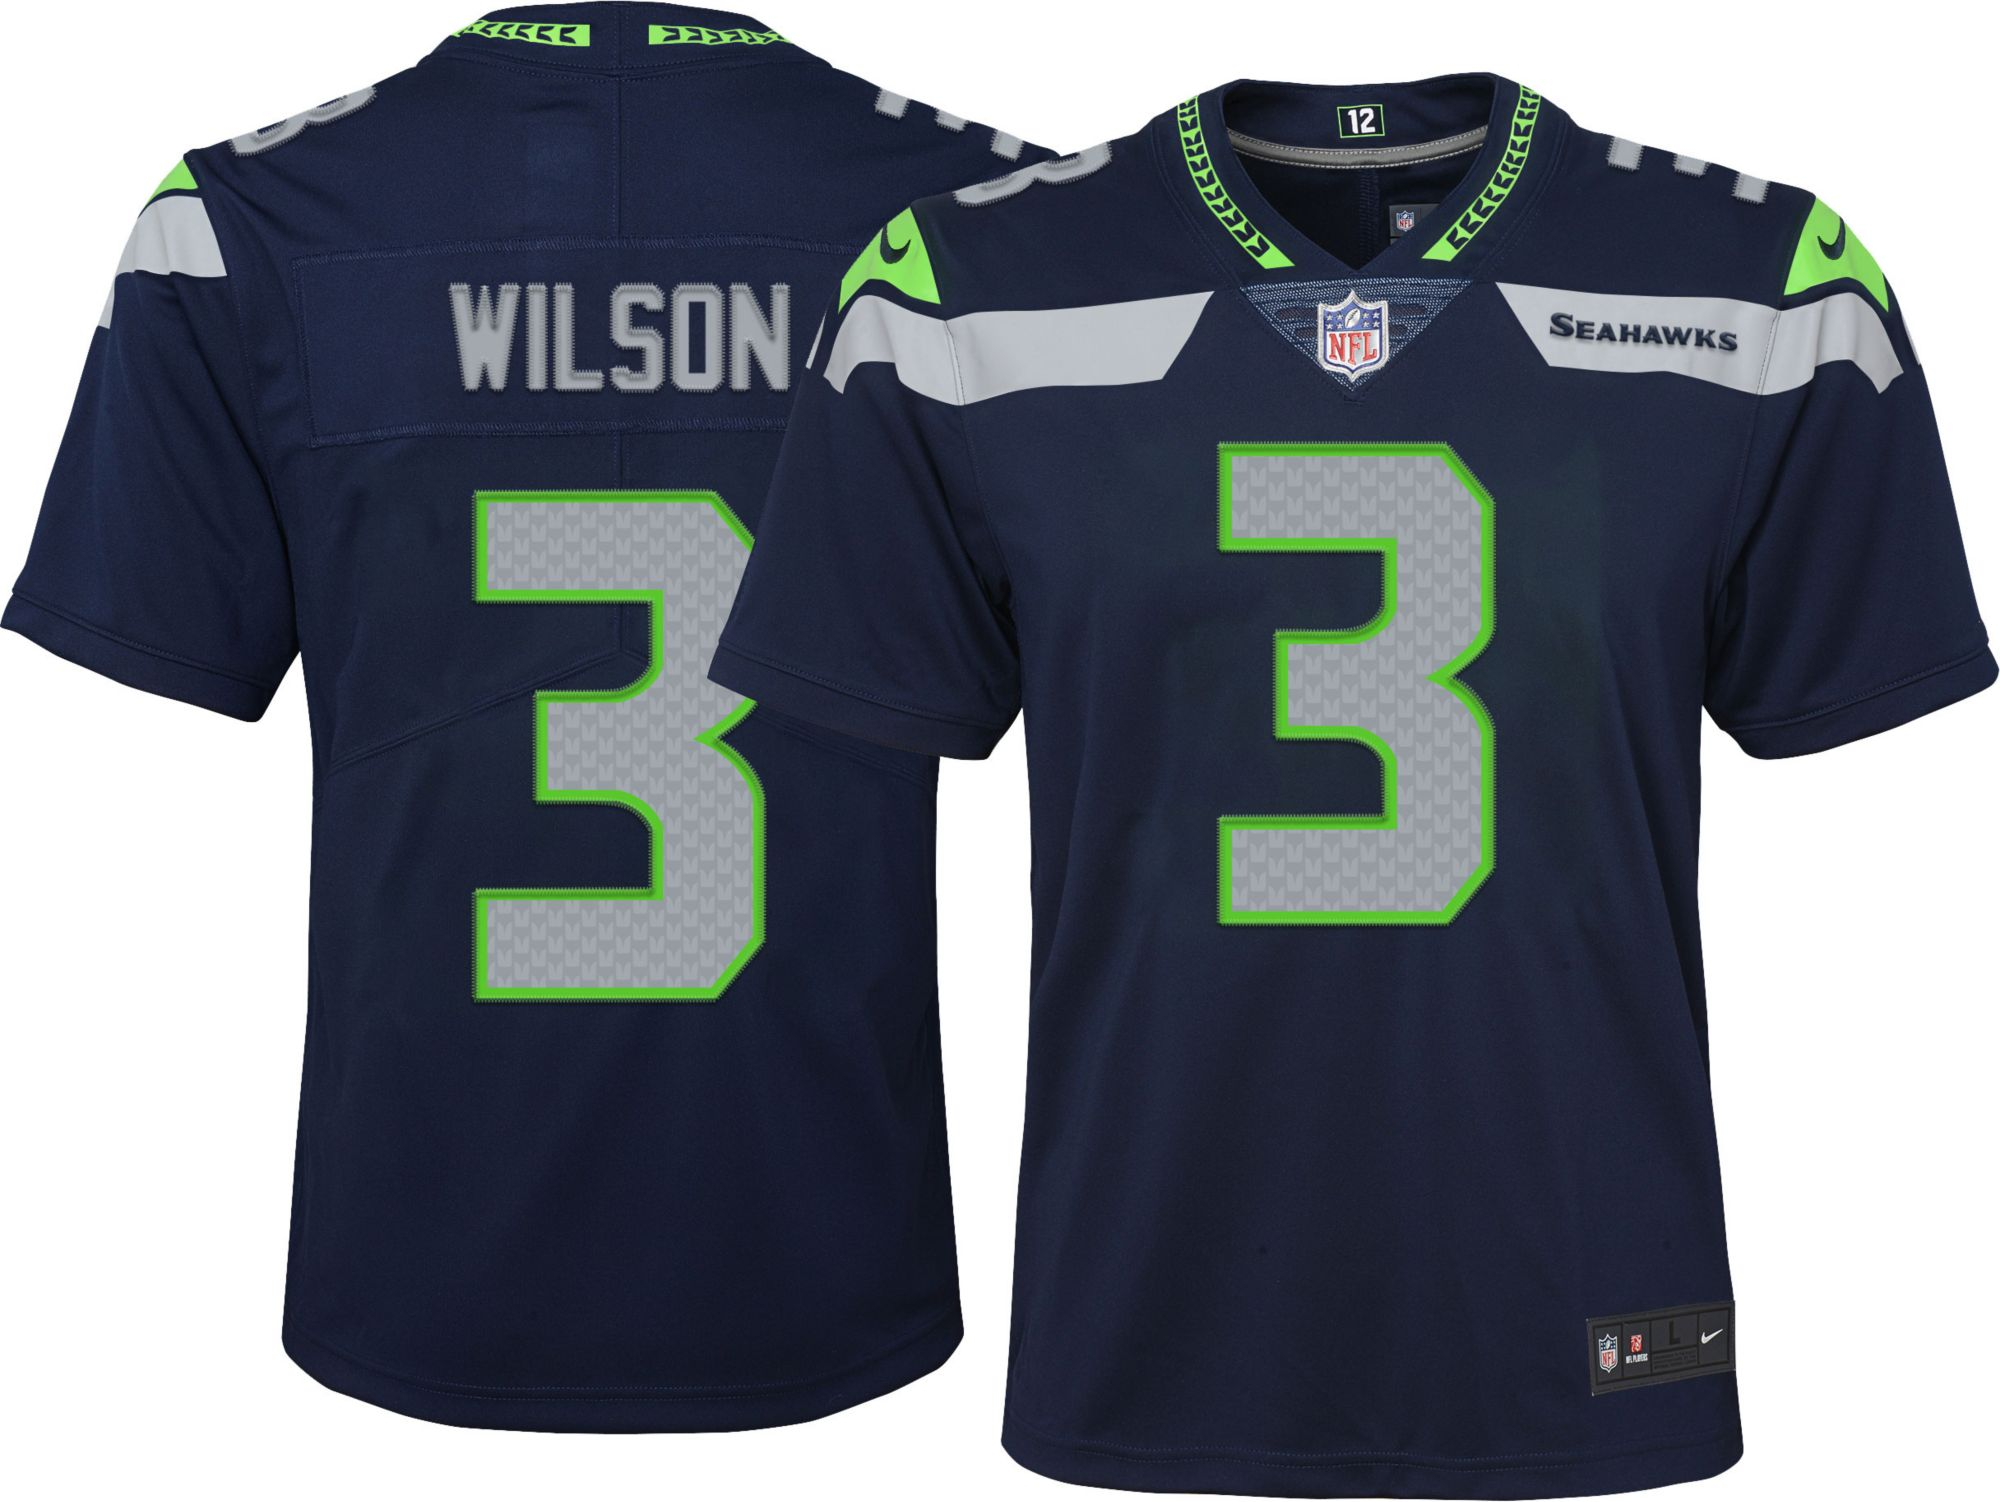 brand new 3a4ce 7e677 Russell Wilson Nba Youth Green Jersey The Lebron Leads James ...